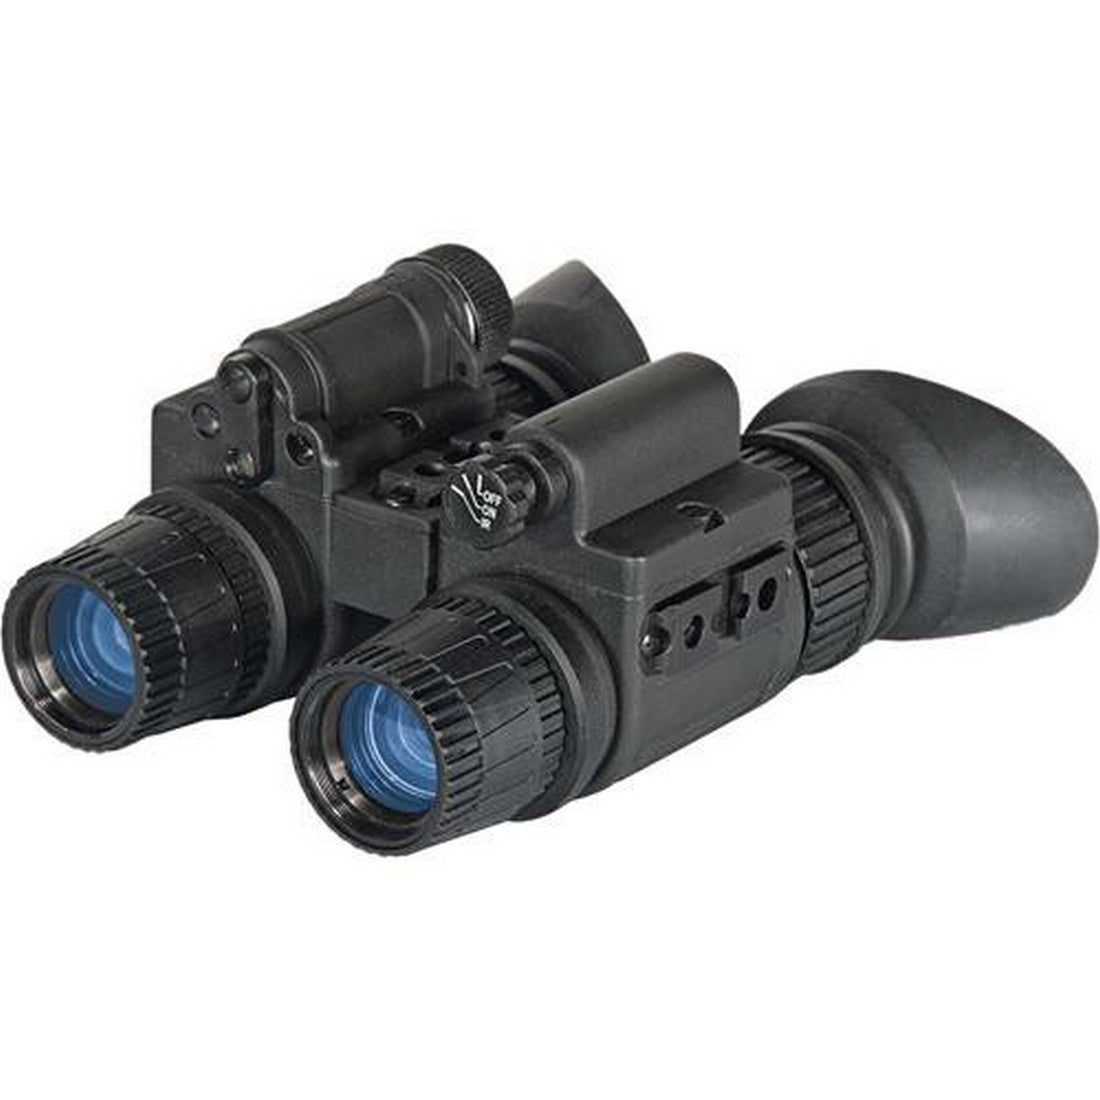 ATN NVGOPS153A PS15 Night Vision Goggle - Gen 3A Alpha (Weapon)